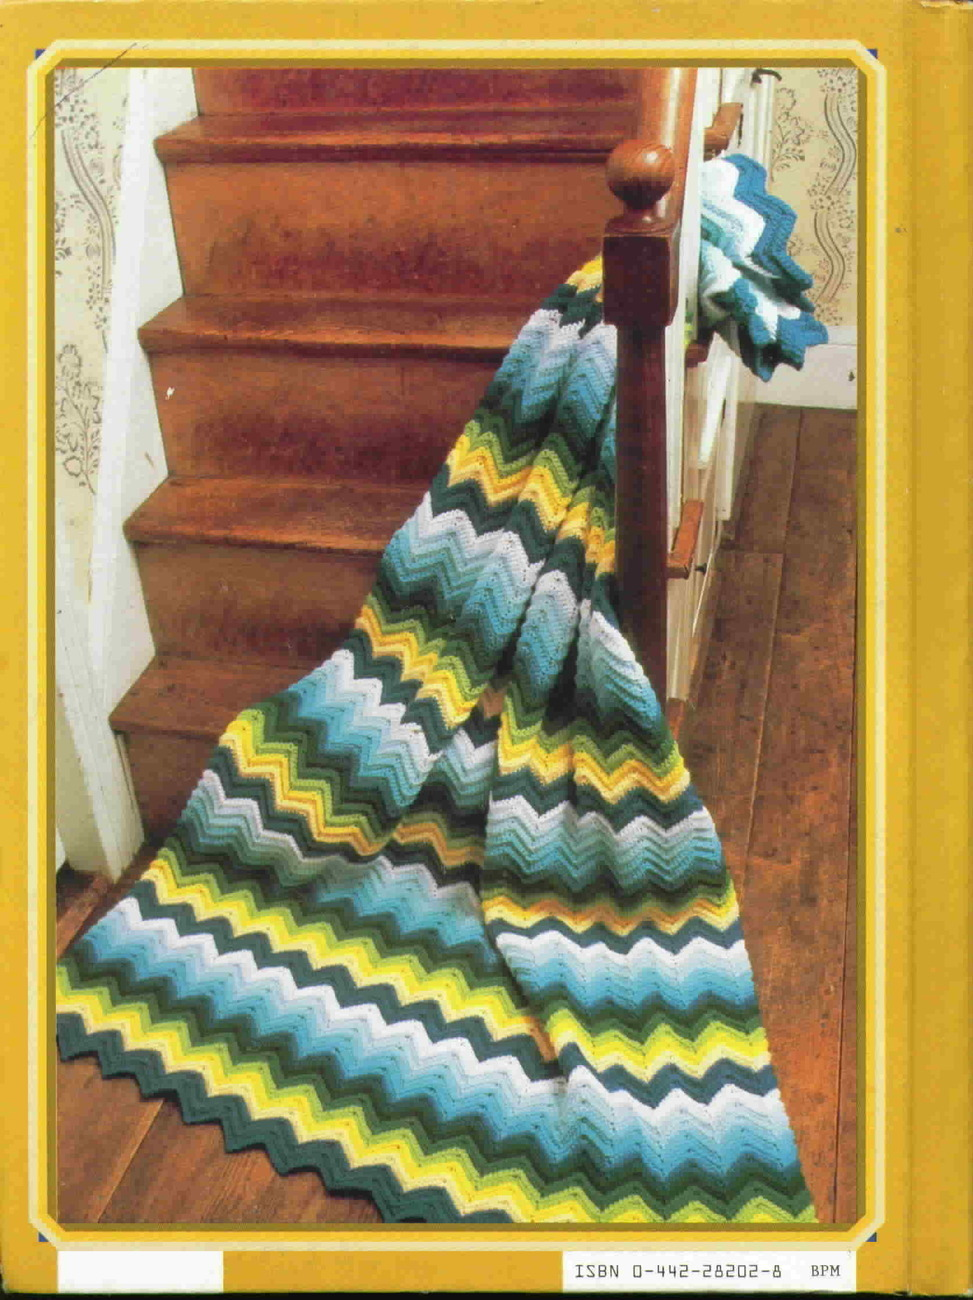 Quilts and Afghans from McCall's Needlework and Crafts